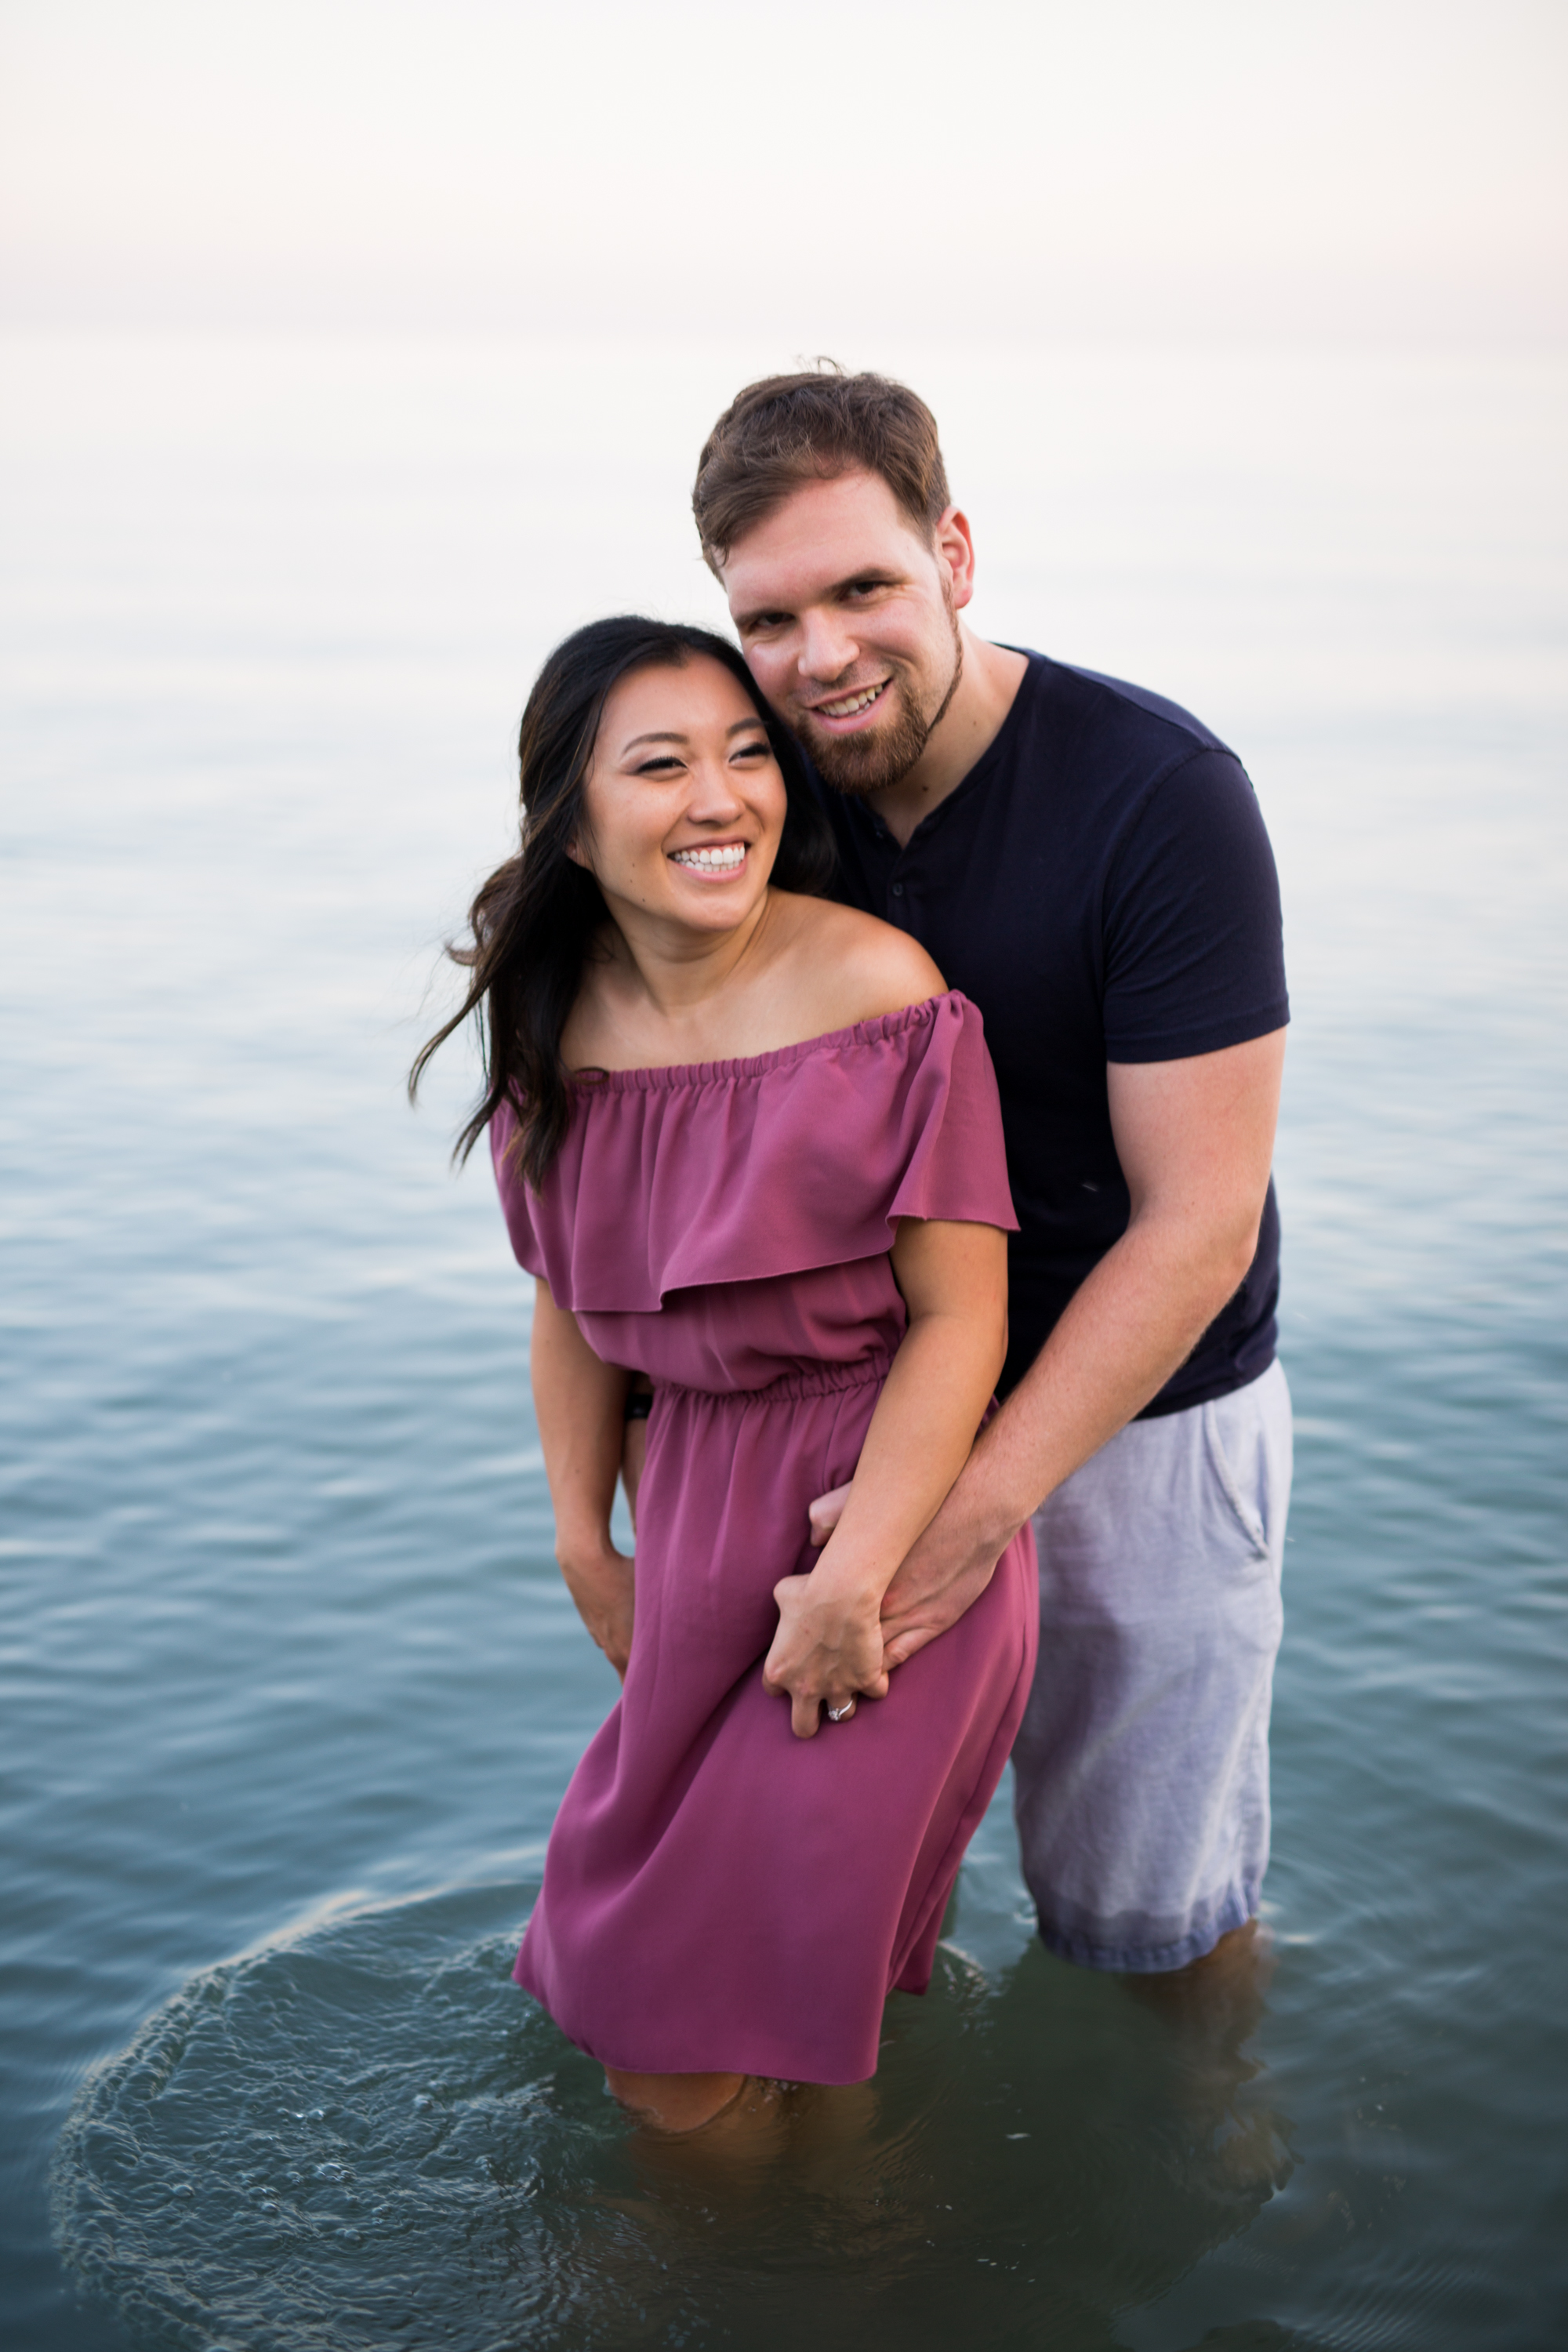 Lake Ontario Cuddle Couple Scarborough Bluffs Engagement Zsuzsi Pal Photography Toronto